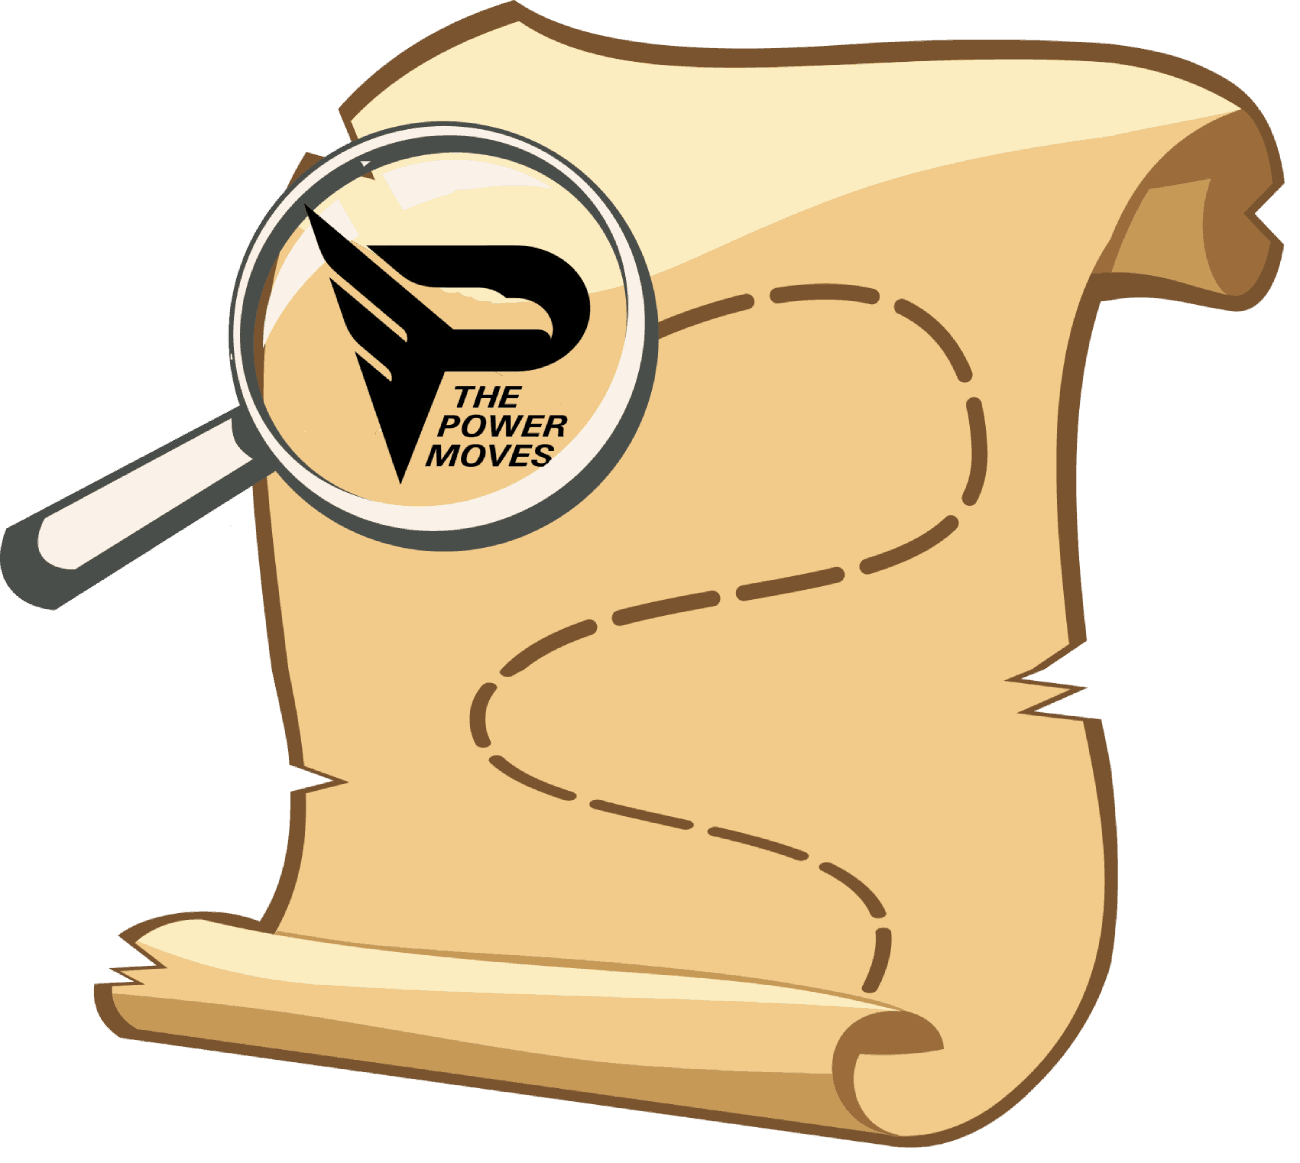 symbolic image of thepowerves.com sitemap as finding a treasure on a map